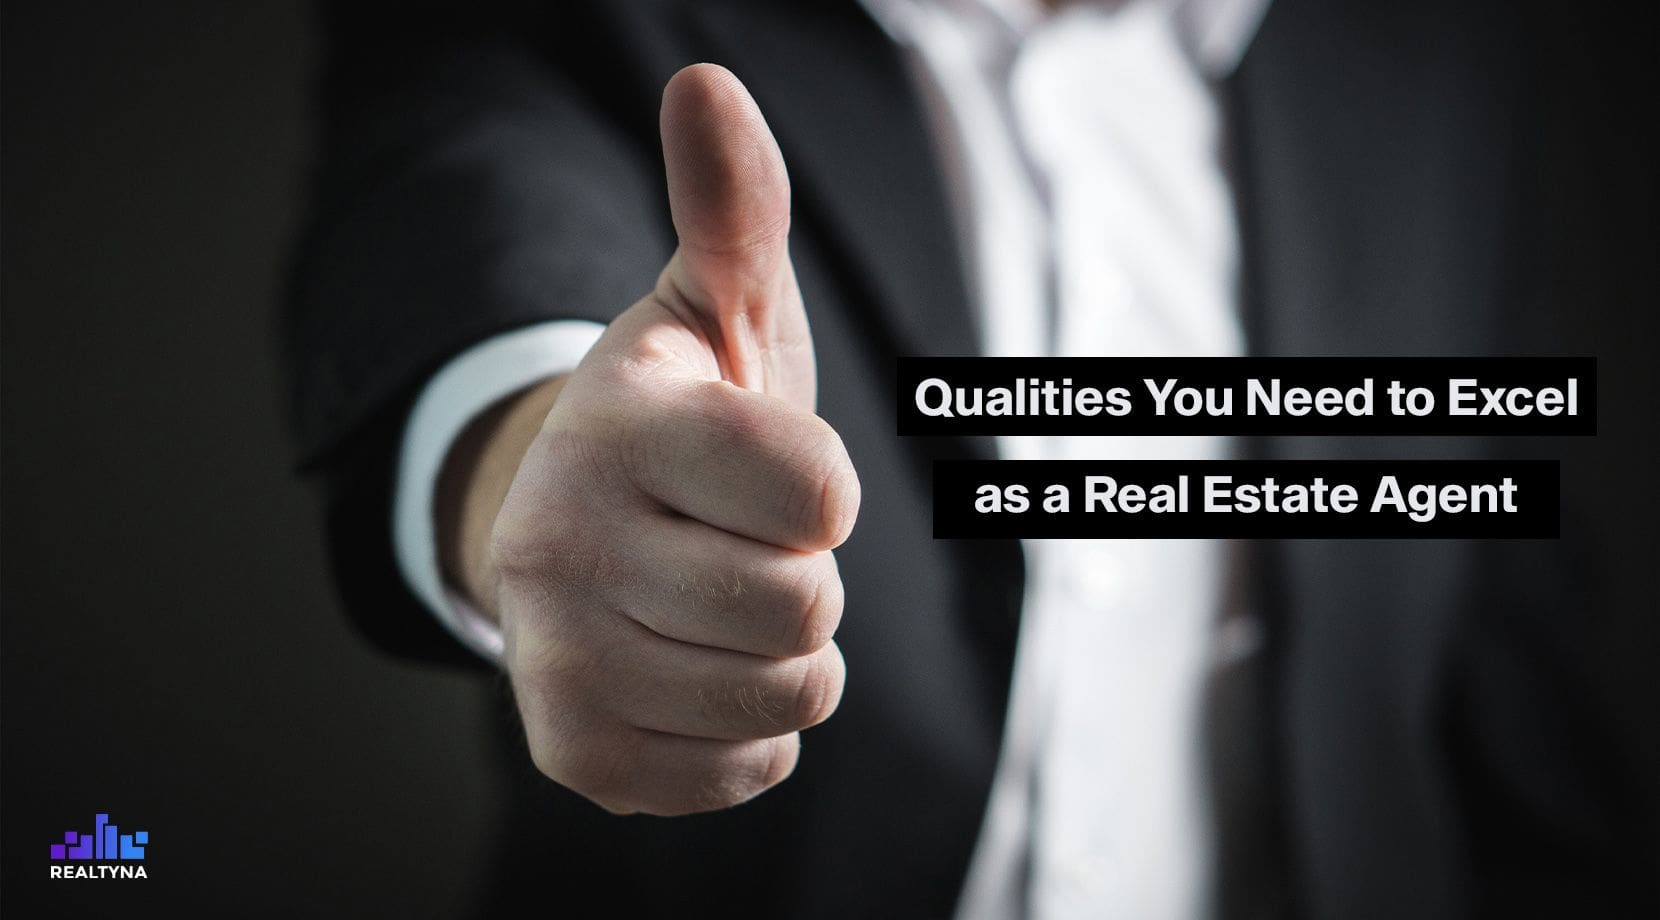 Qualities to be Real Estate Agent